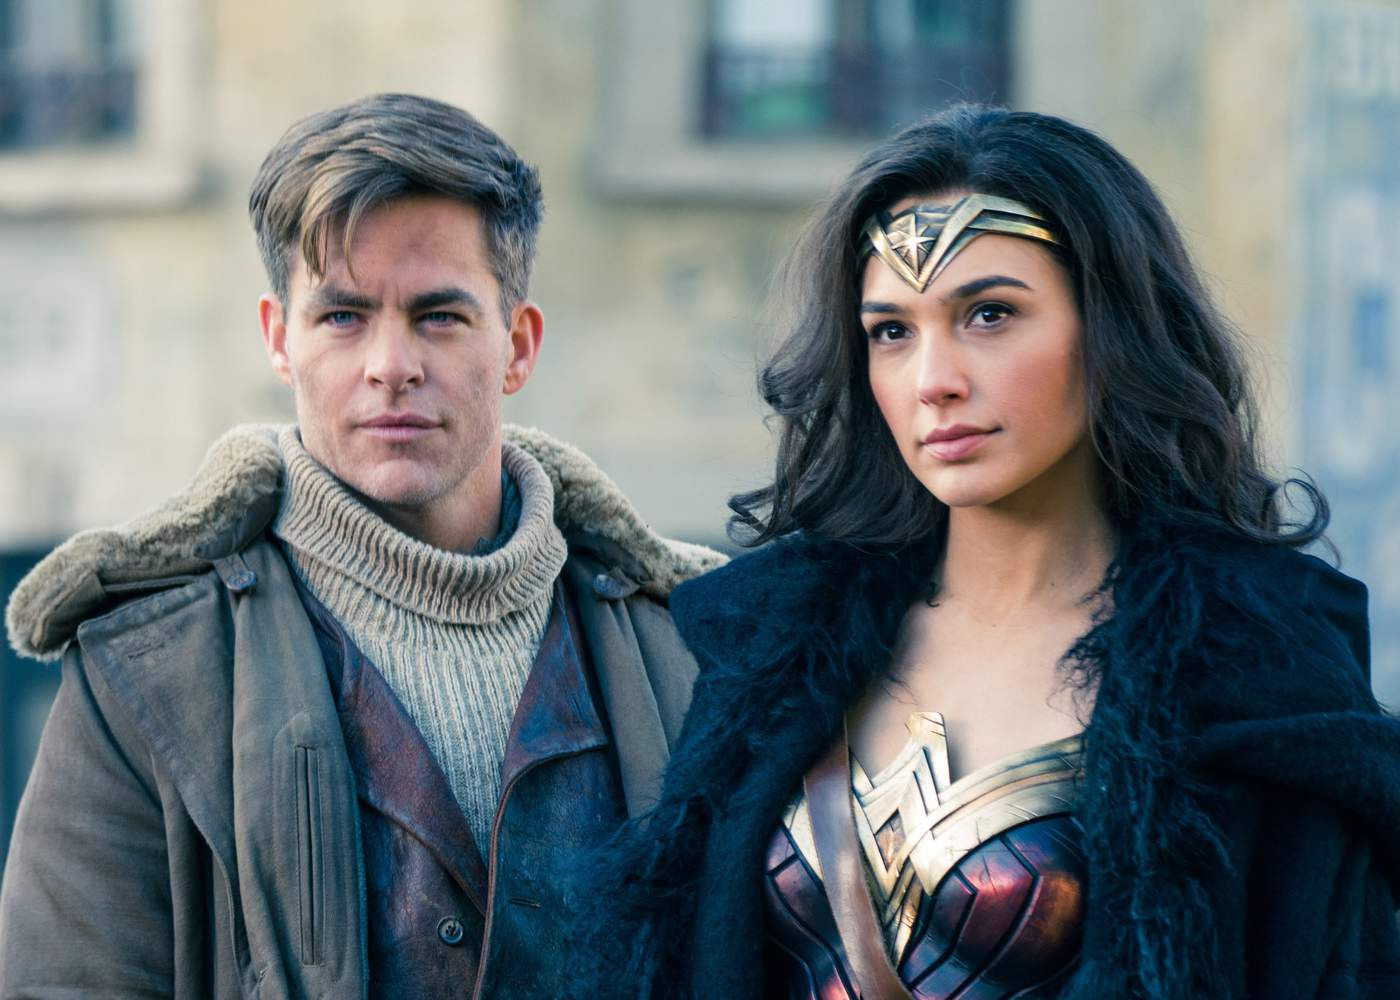 Diana Protects Steve Trevor in First Wonder Woman Clip